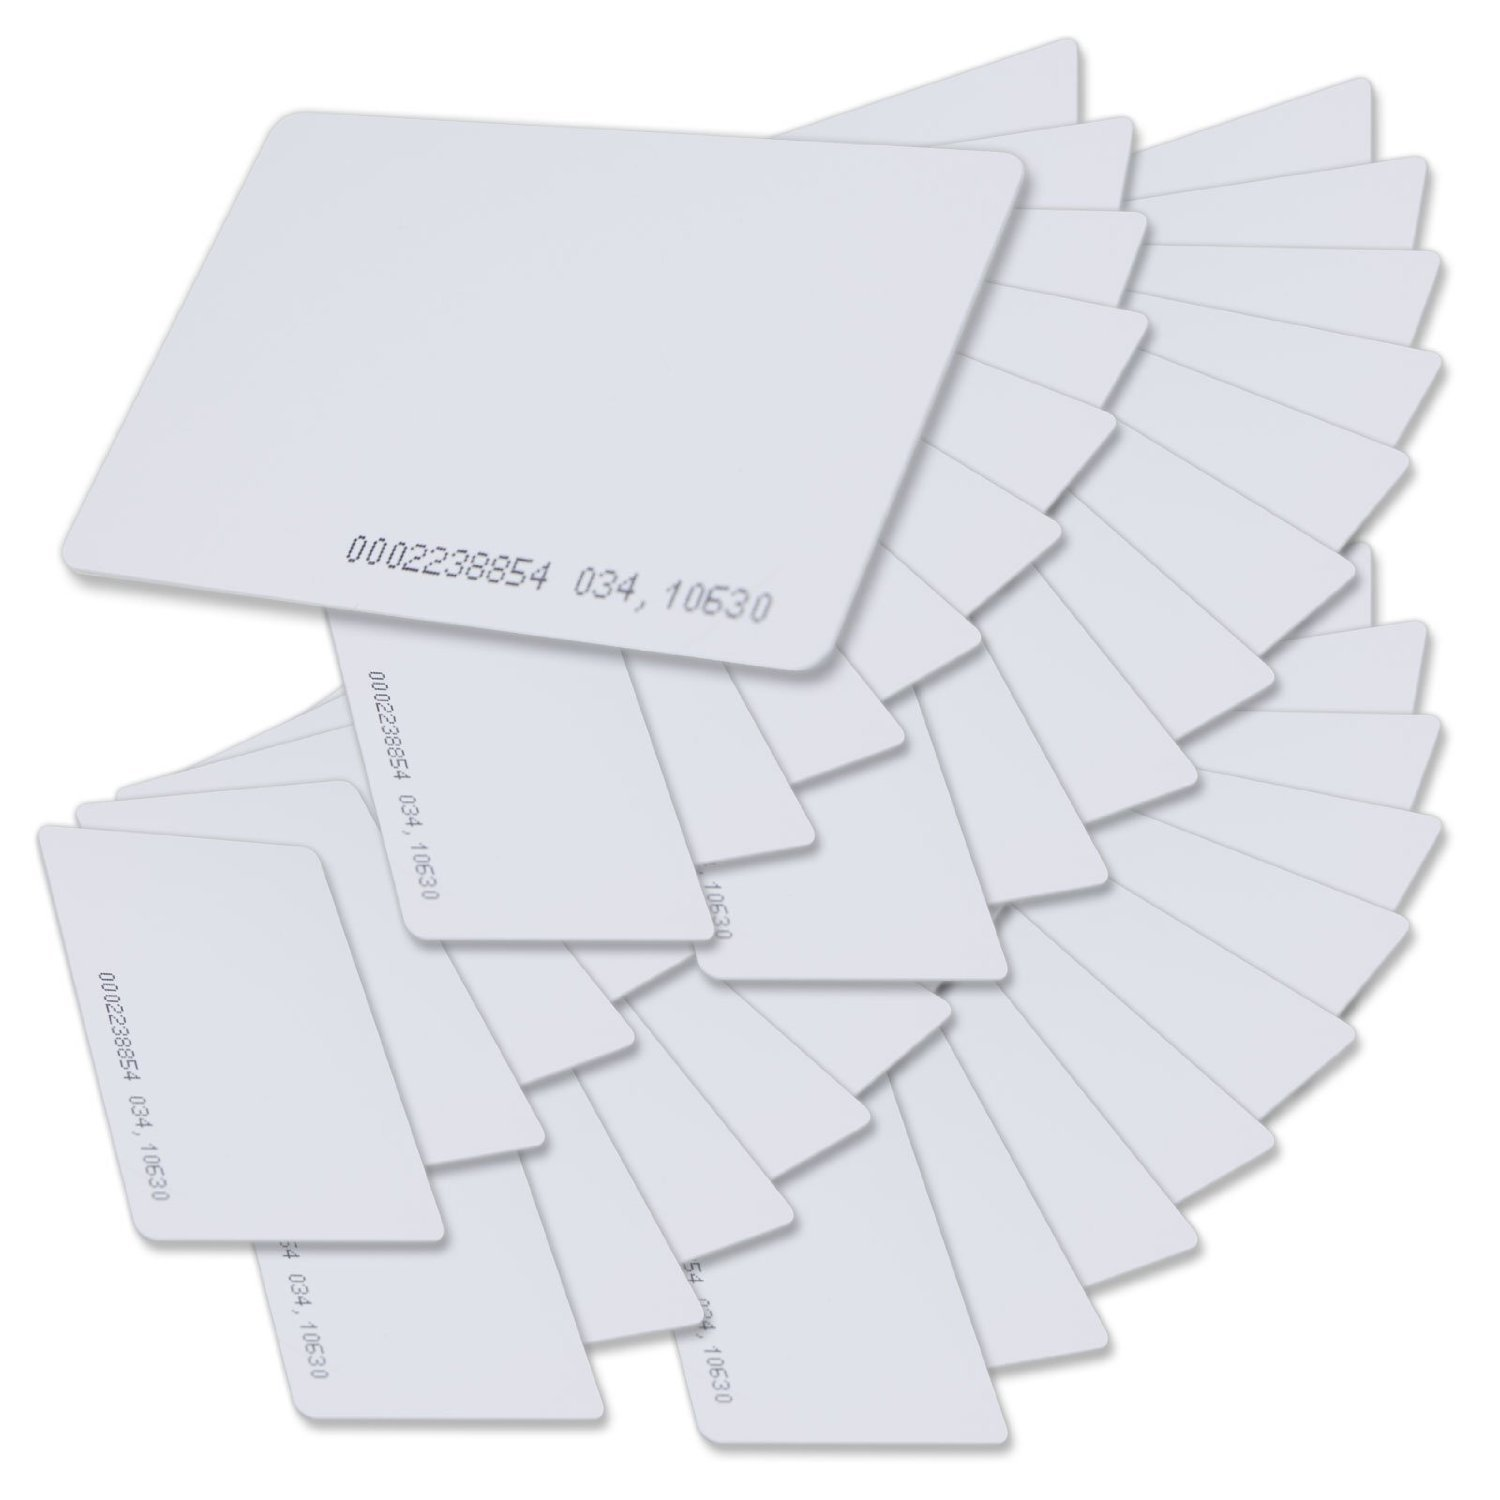 RFID Black Card Contactless 125kHz EM4100 RFID Proximity ID EM Smart Entry Access Card (pack of 50) rfid contactless card proximity id card rfid iso pvc card time attendance for access control 125khz with tk4100 em4100 chip